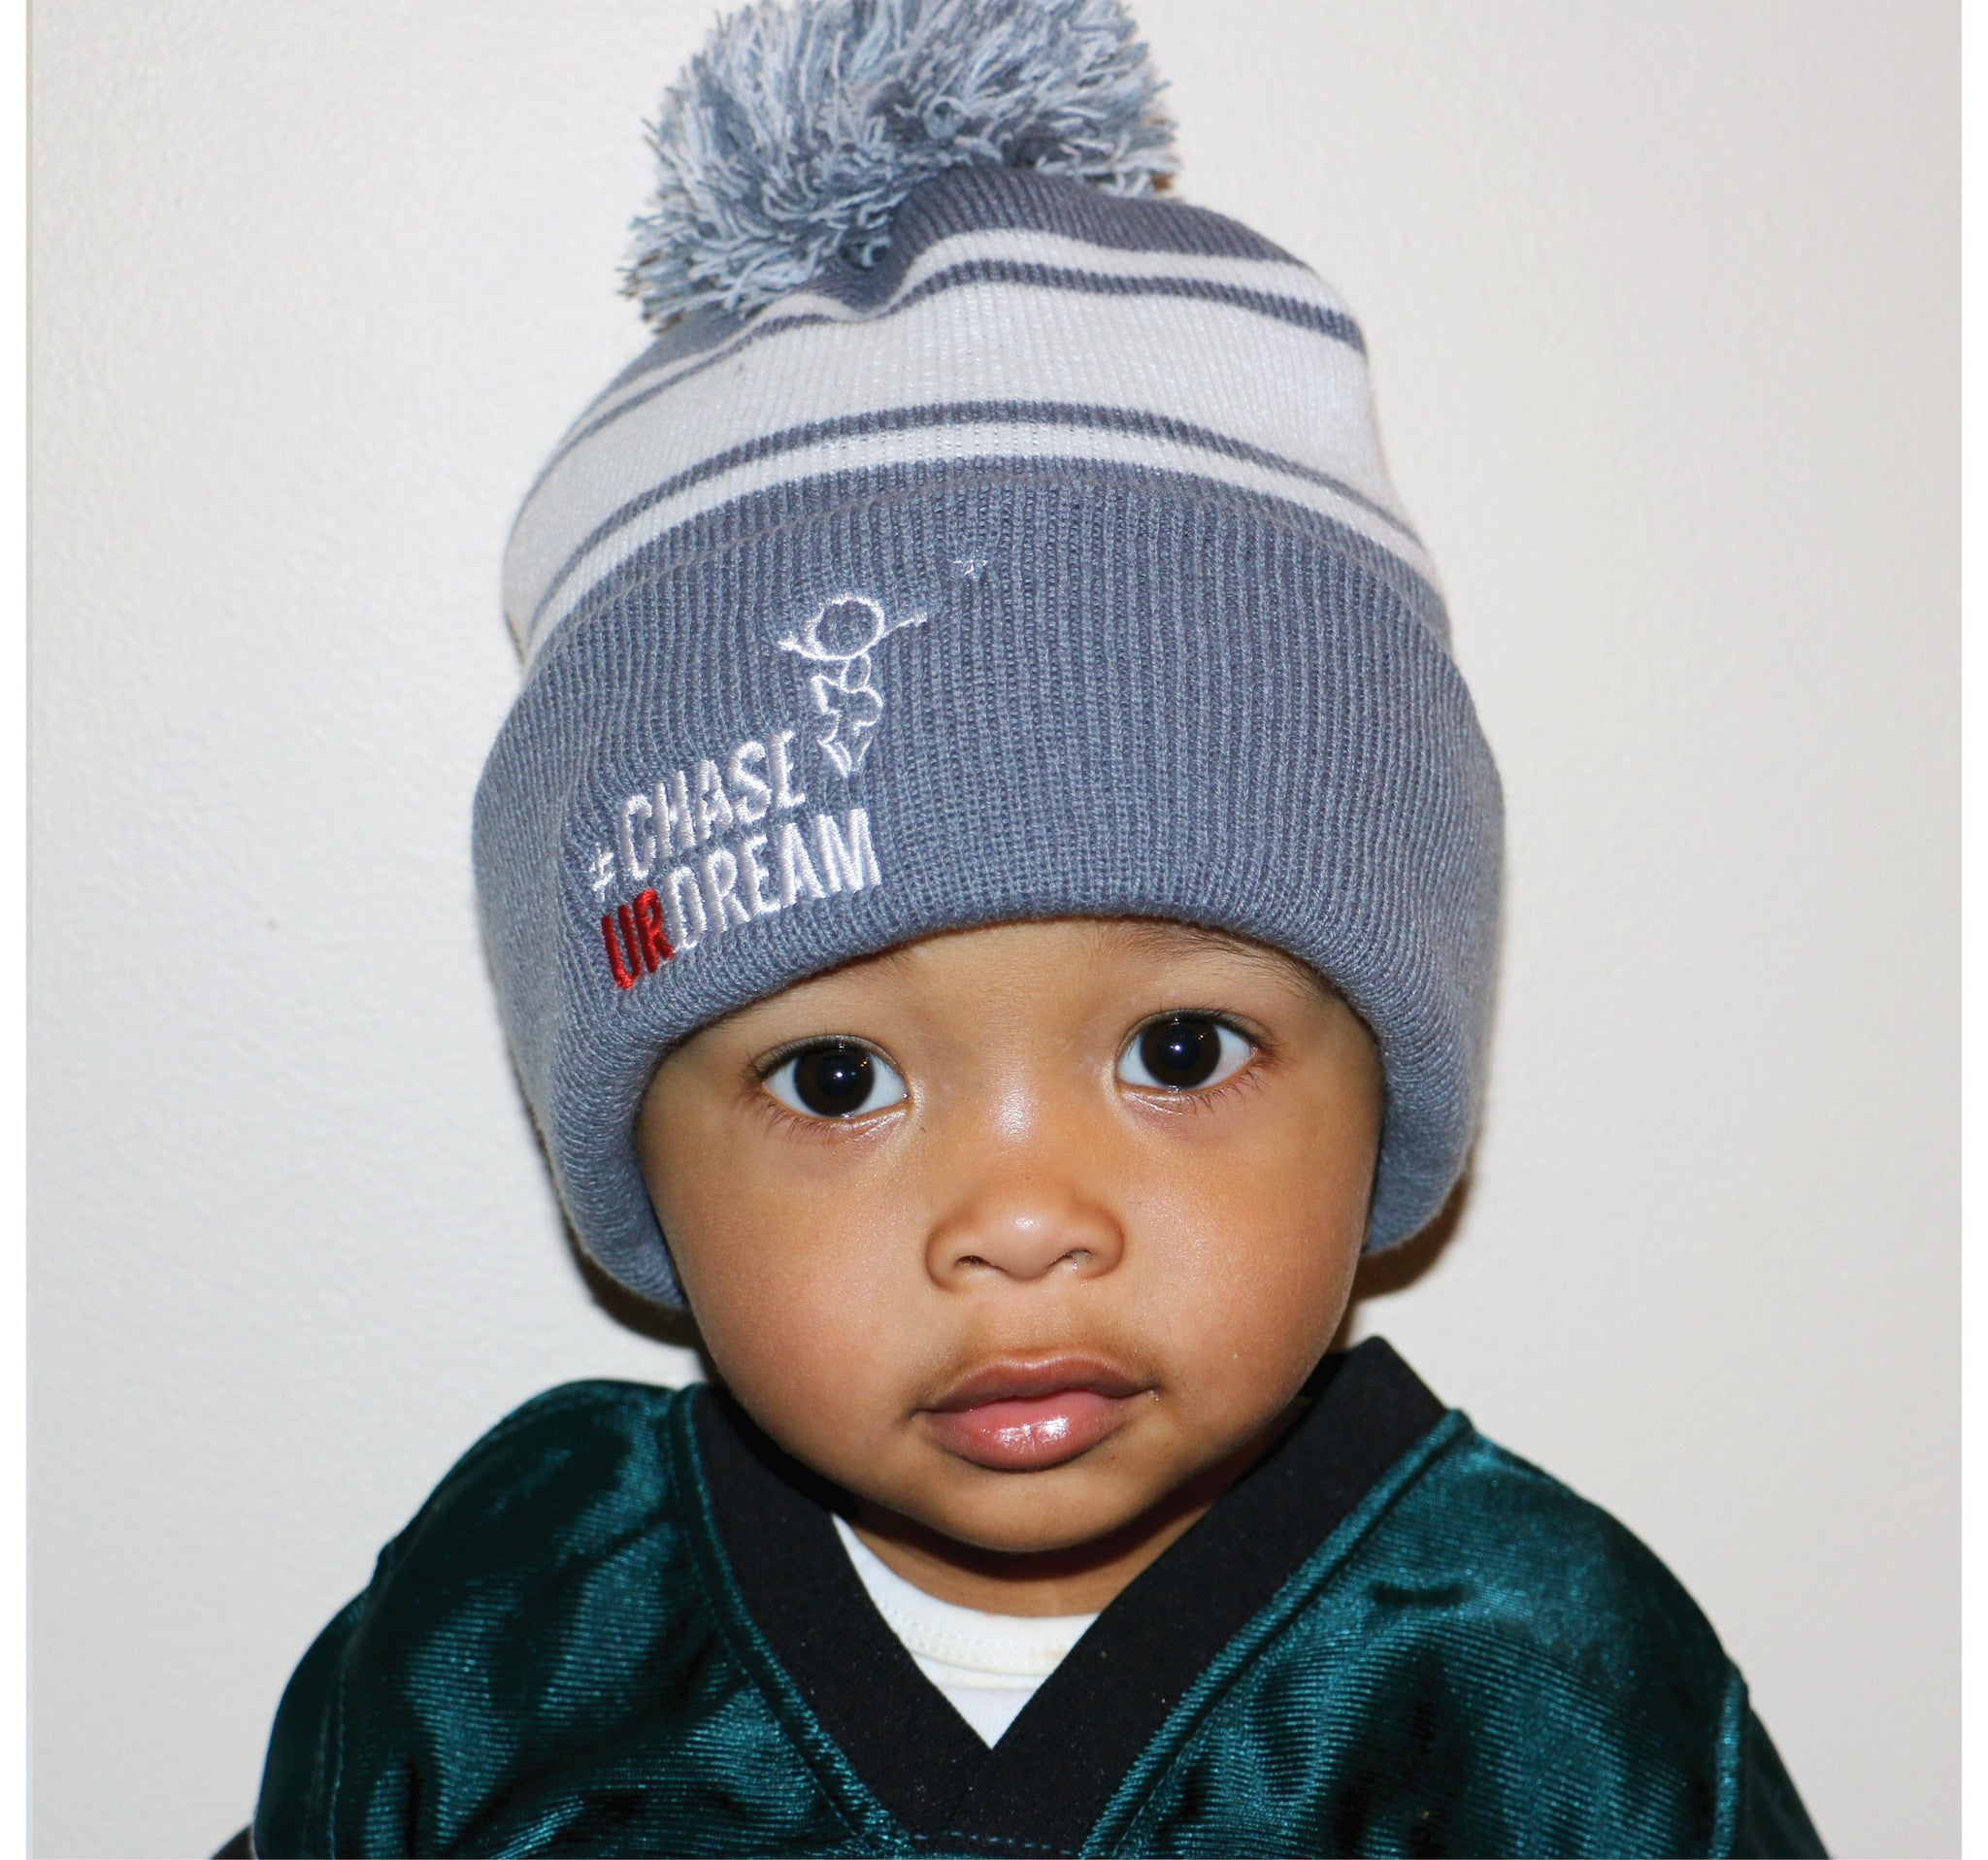 Chase Ur Dream Children's Knit Hat (grey and white)